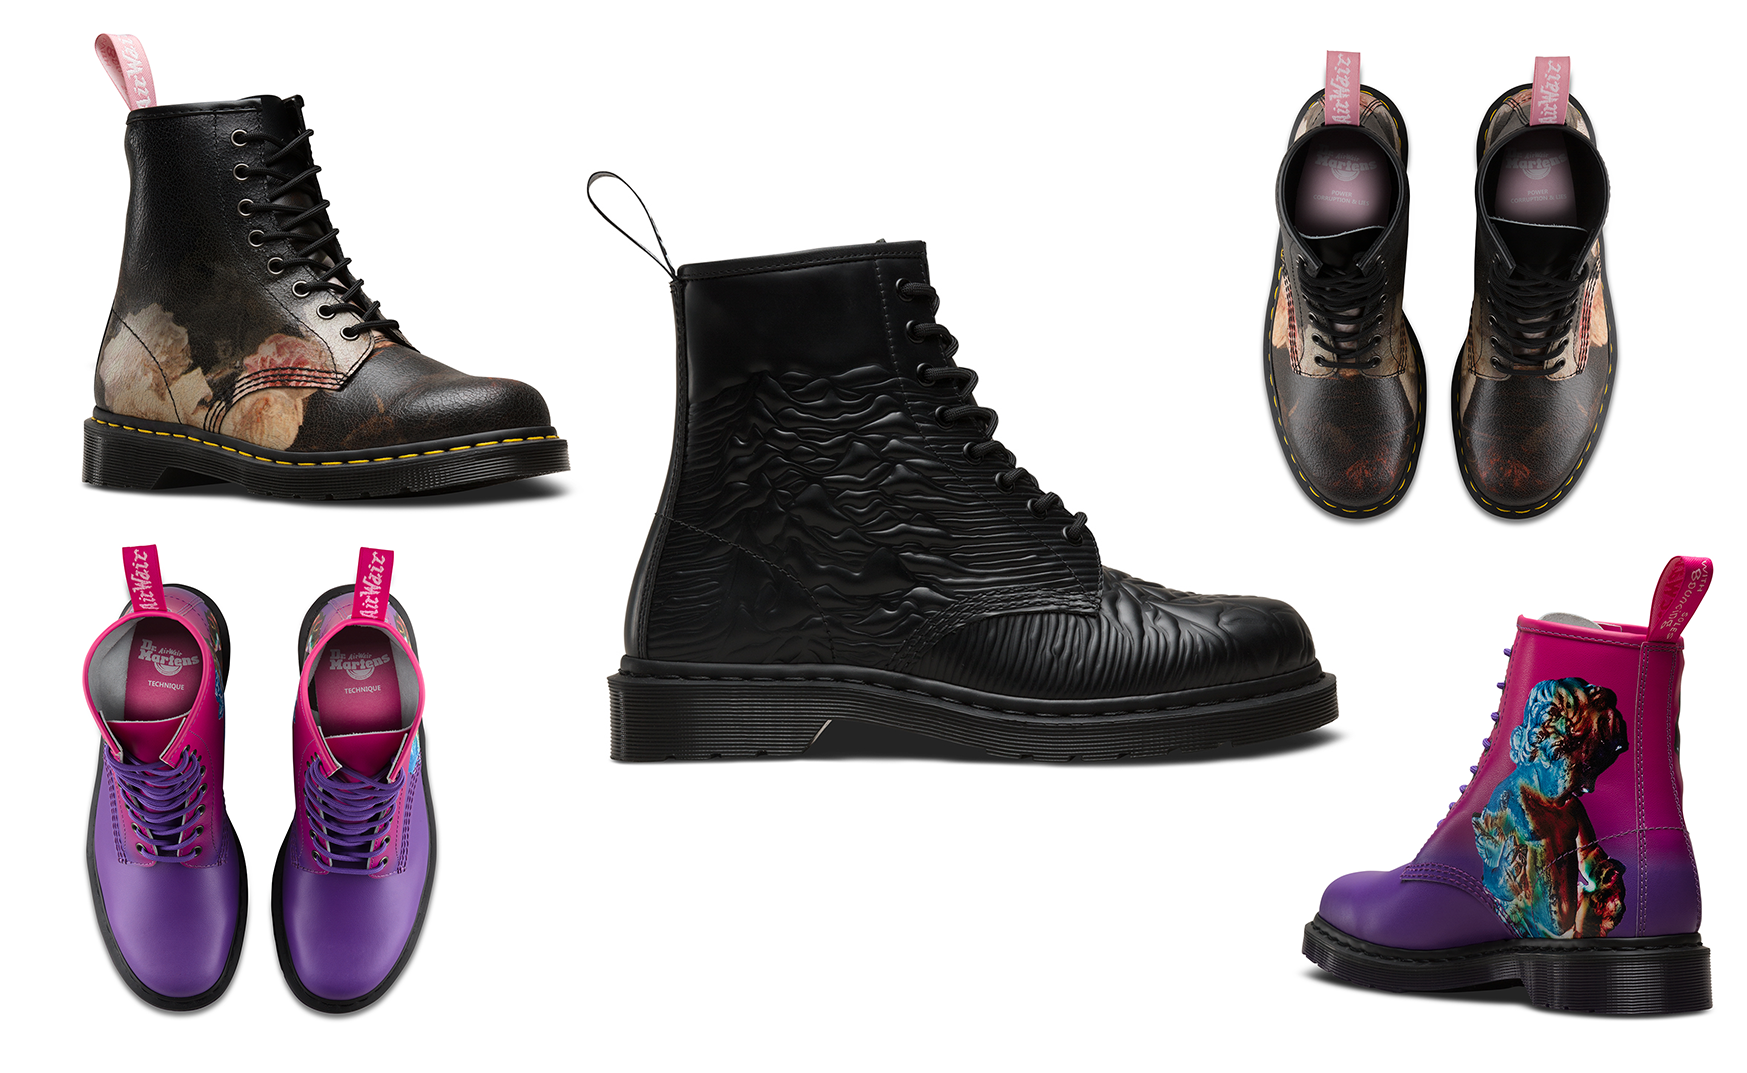 New Order & Joy Division | Dr. Martens | Leather Boots